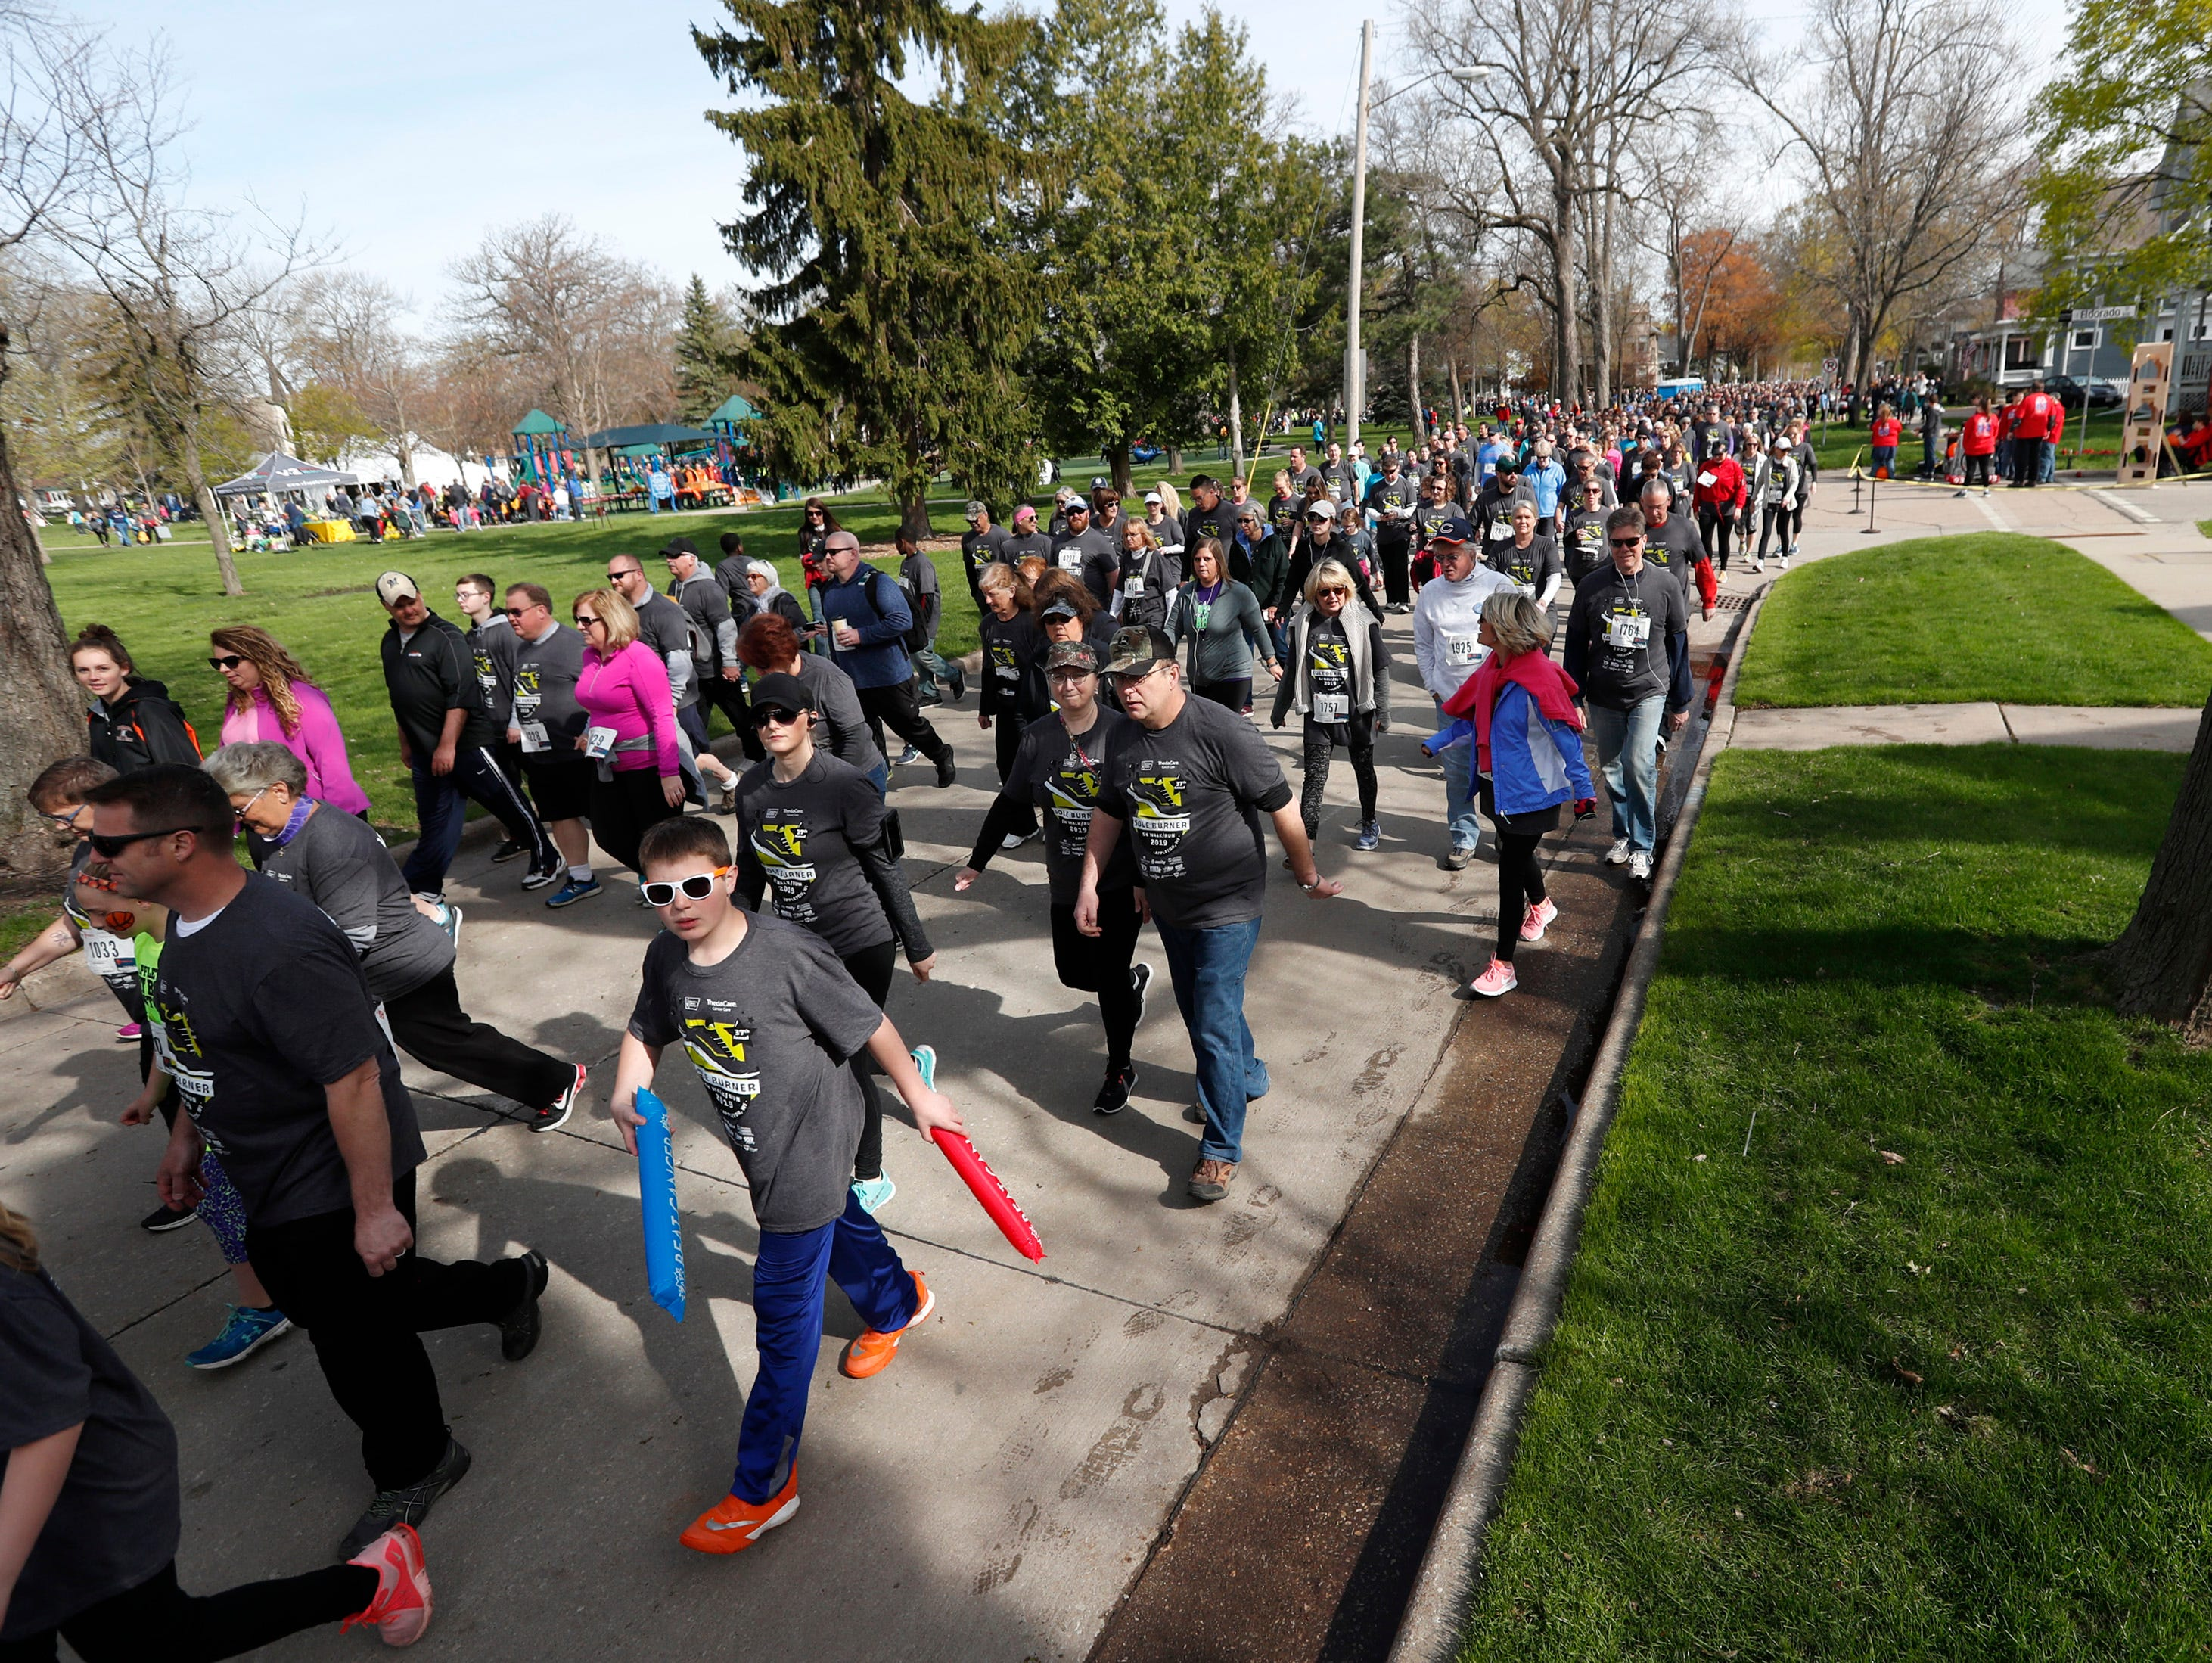 Walkers take to the street during the Sole Burner 5K Walk-Run Saturday, May 11, 2019, in Appleton, Wis. Danny Damiani/USA TODAY NETWORK-Wisconsin